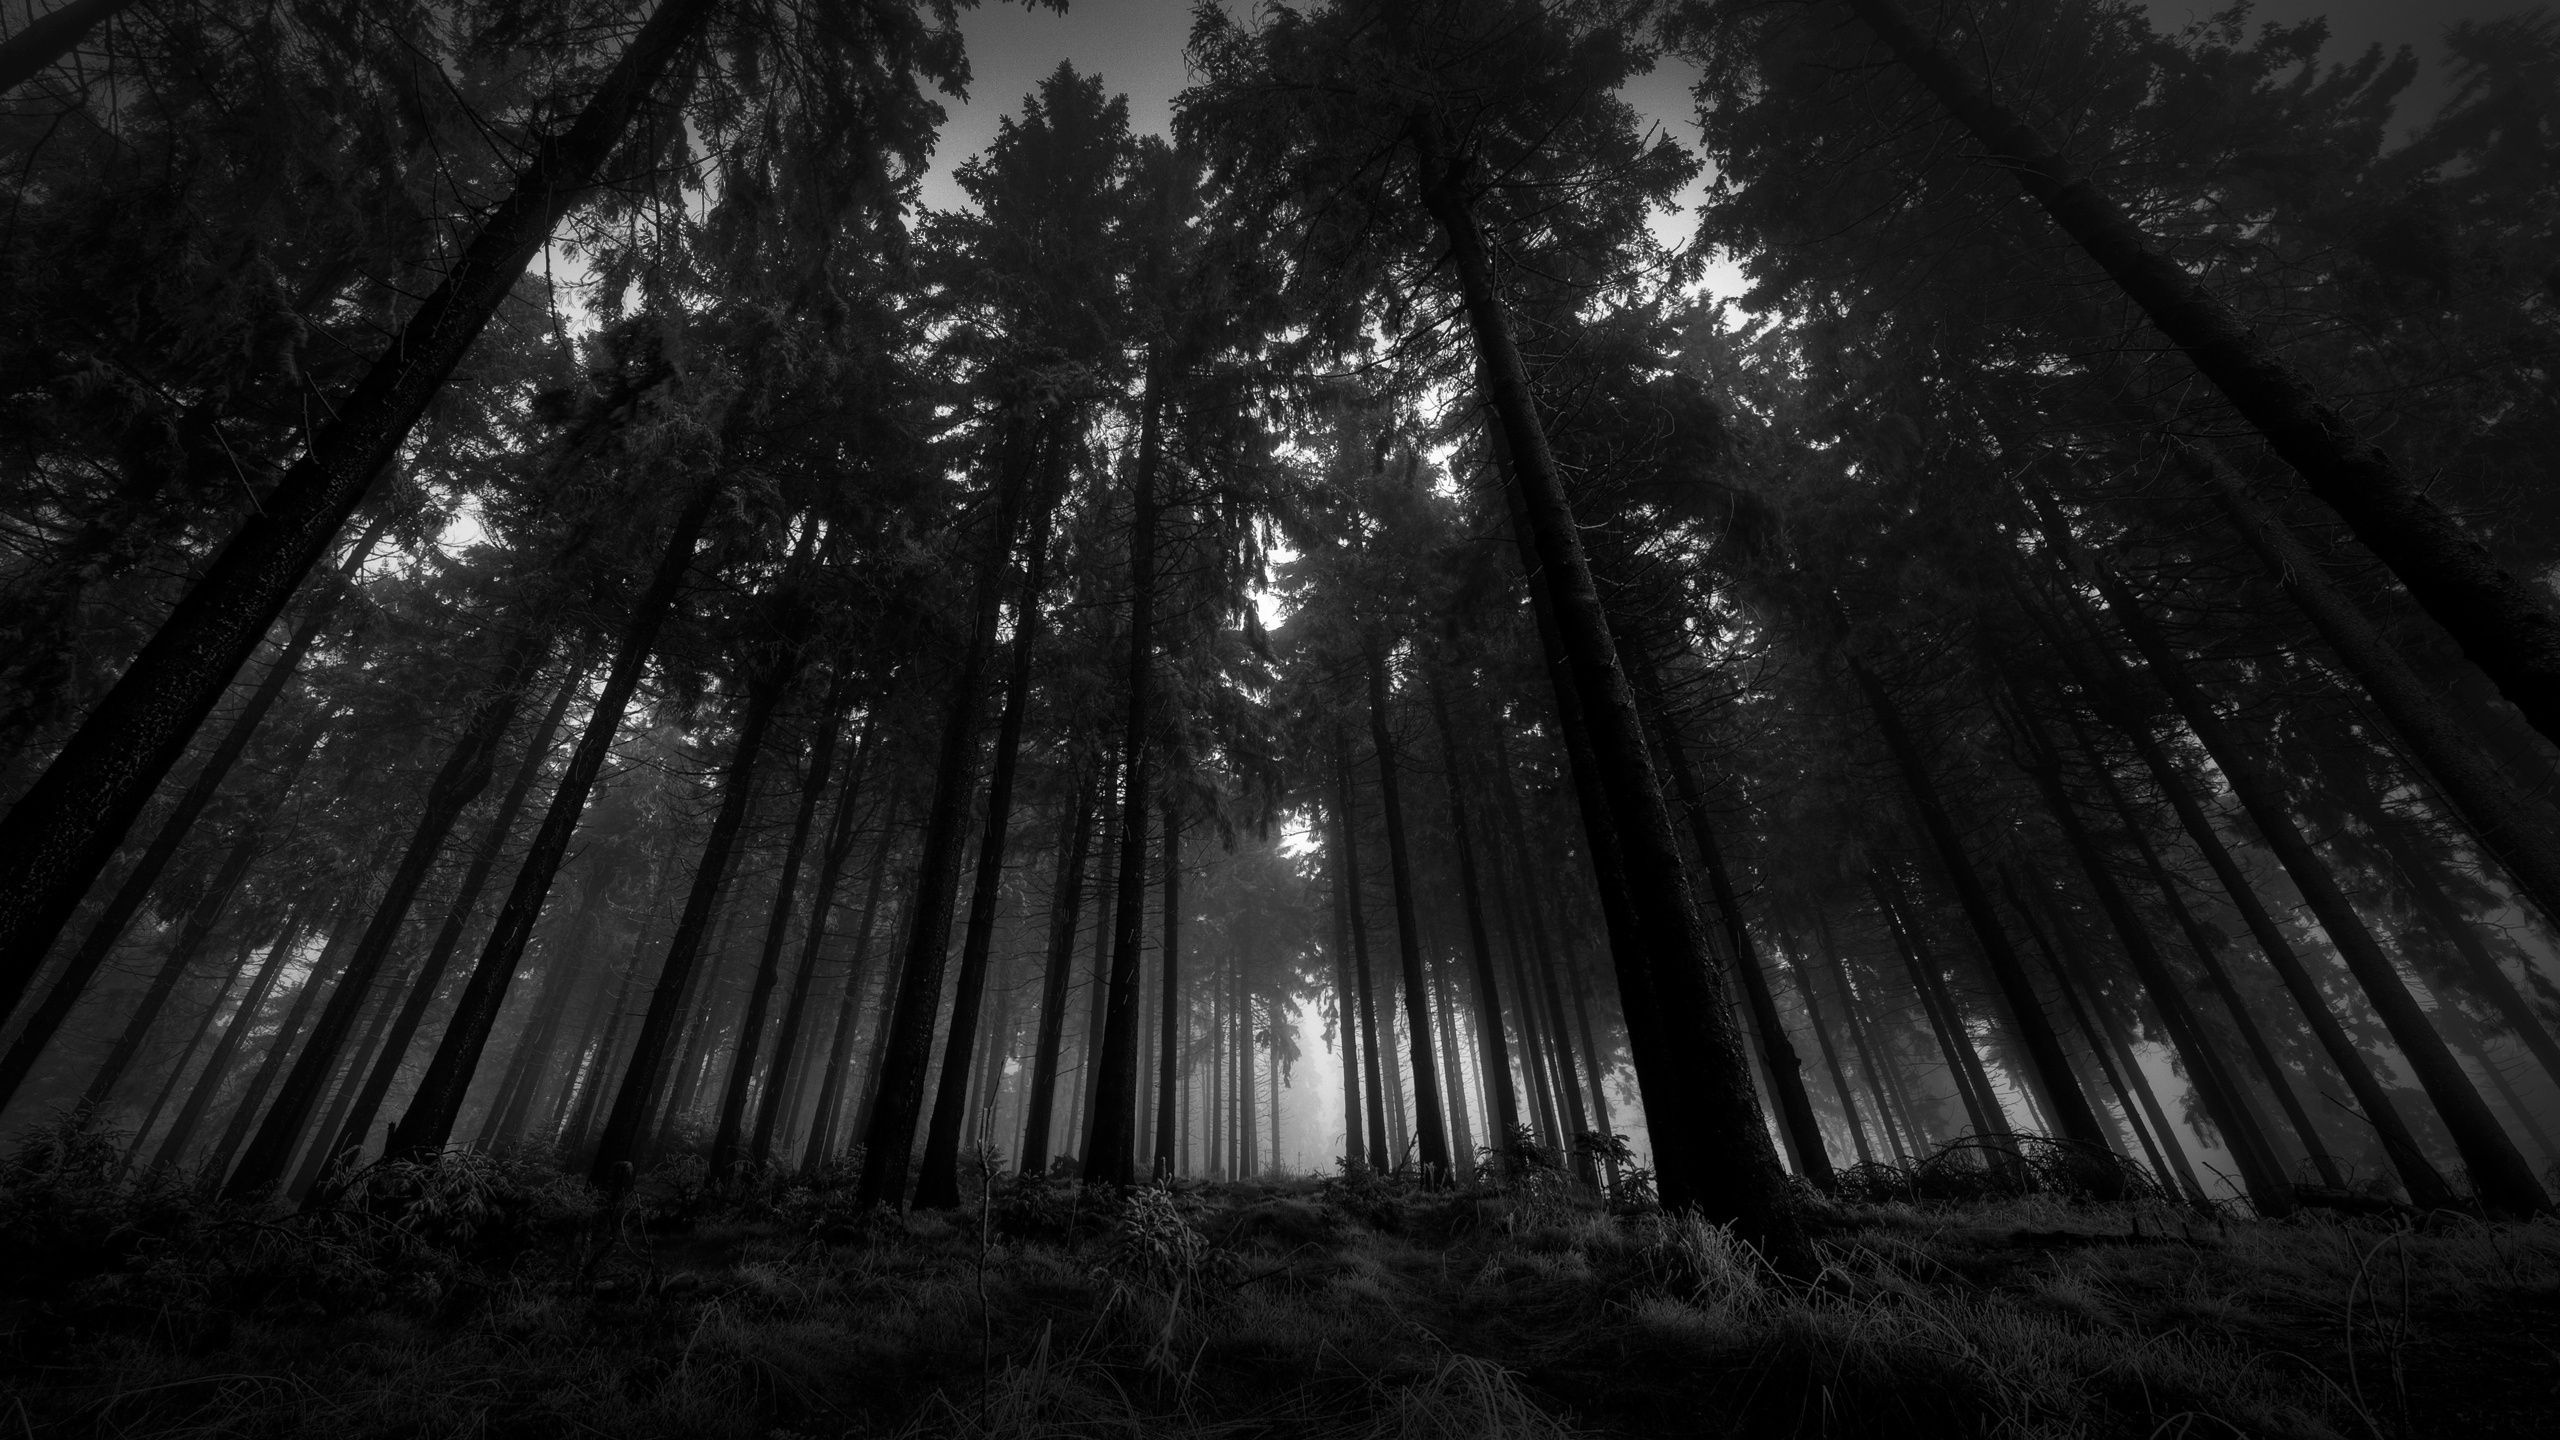 Download Dark Forest Wallpapers For Iphone For Iphone Pc Desktop Android Or Mac P Hd Pattern